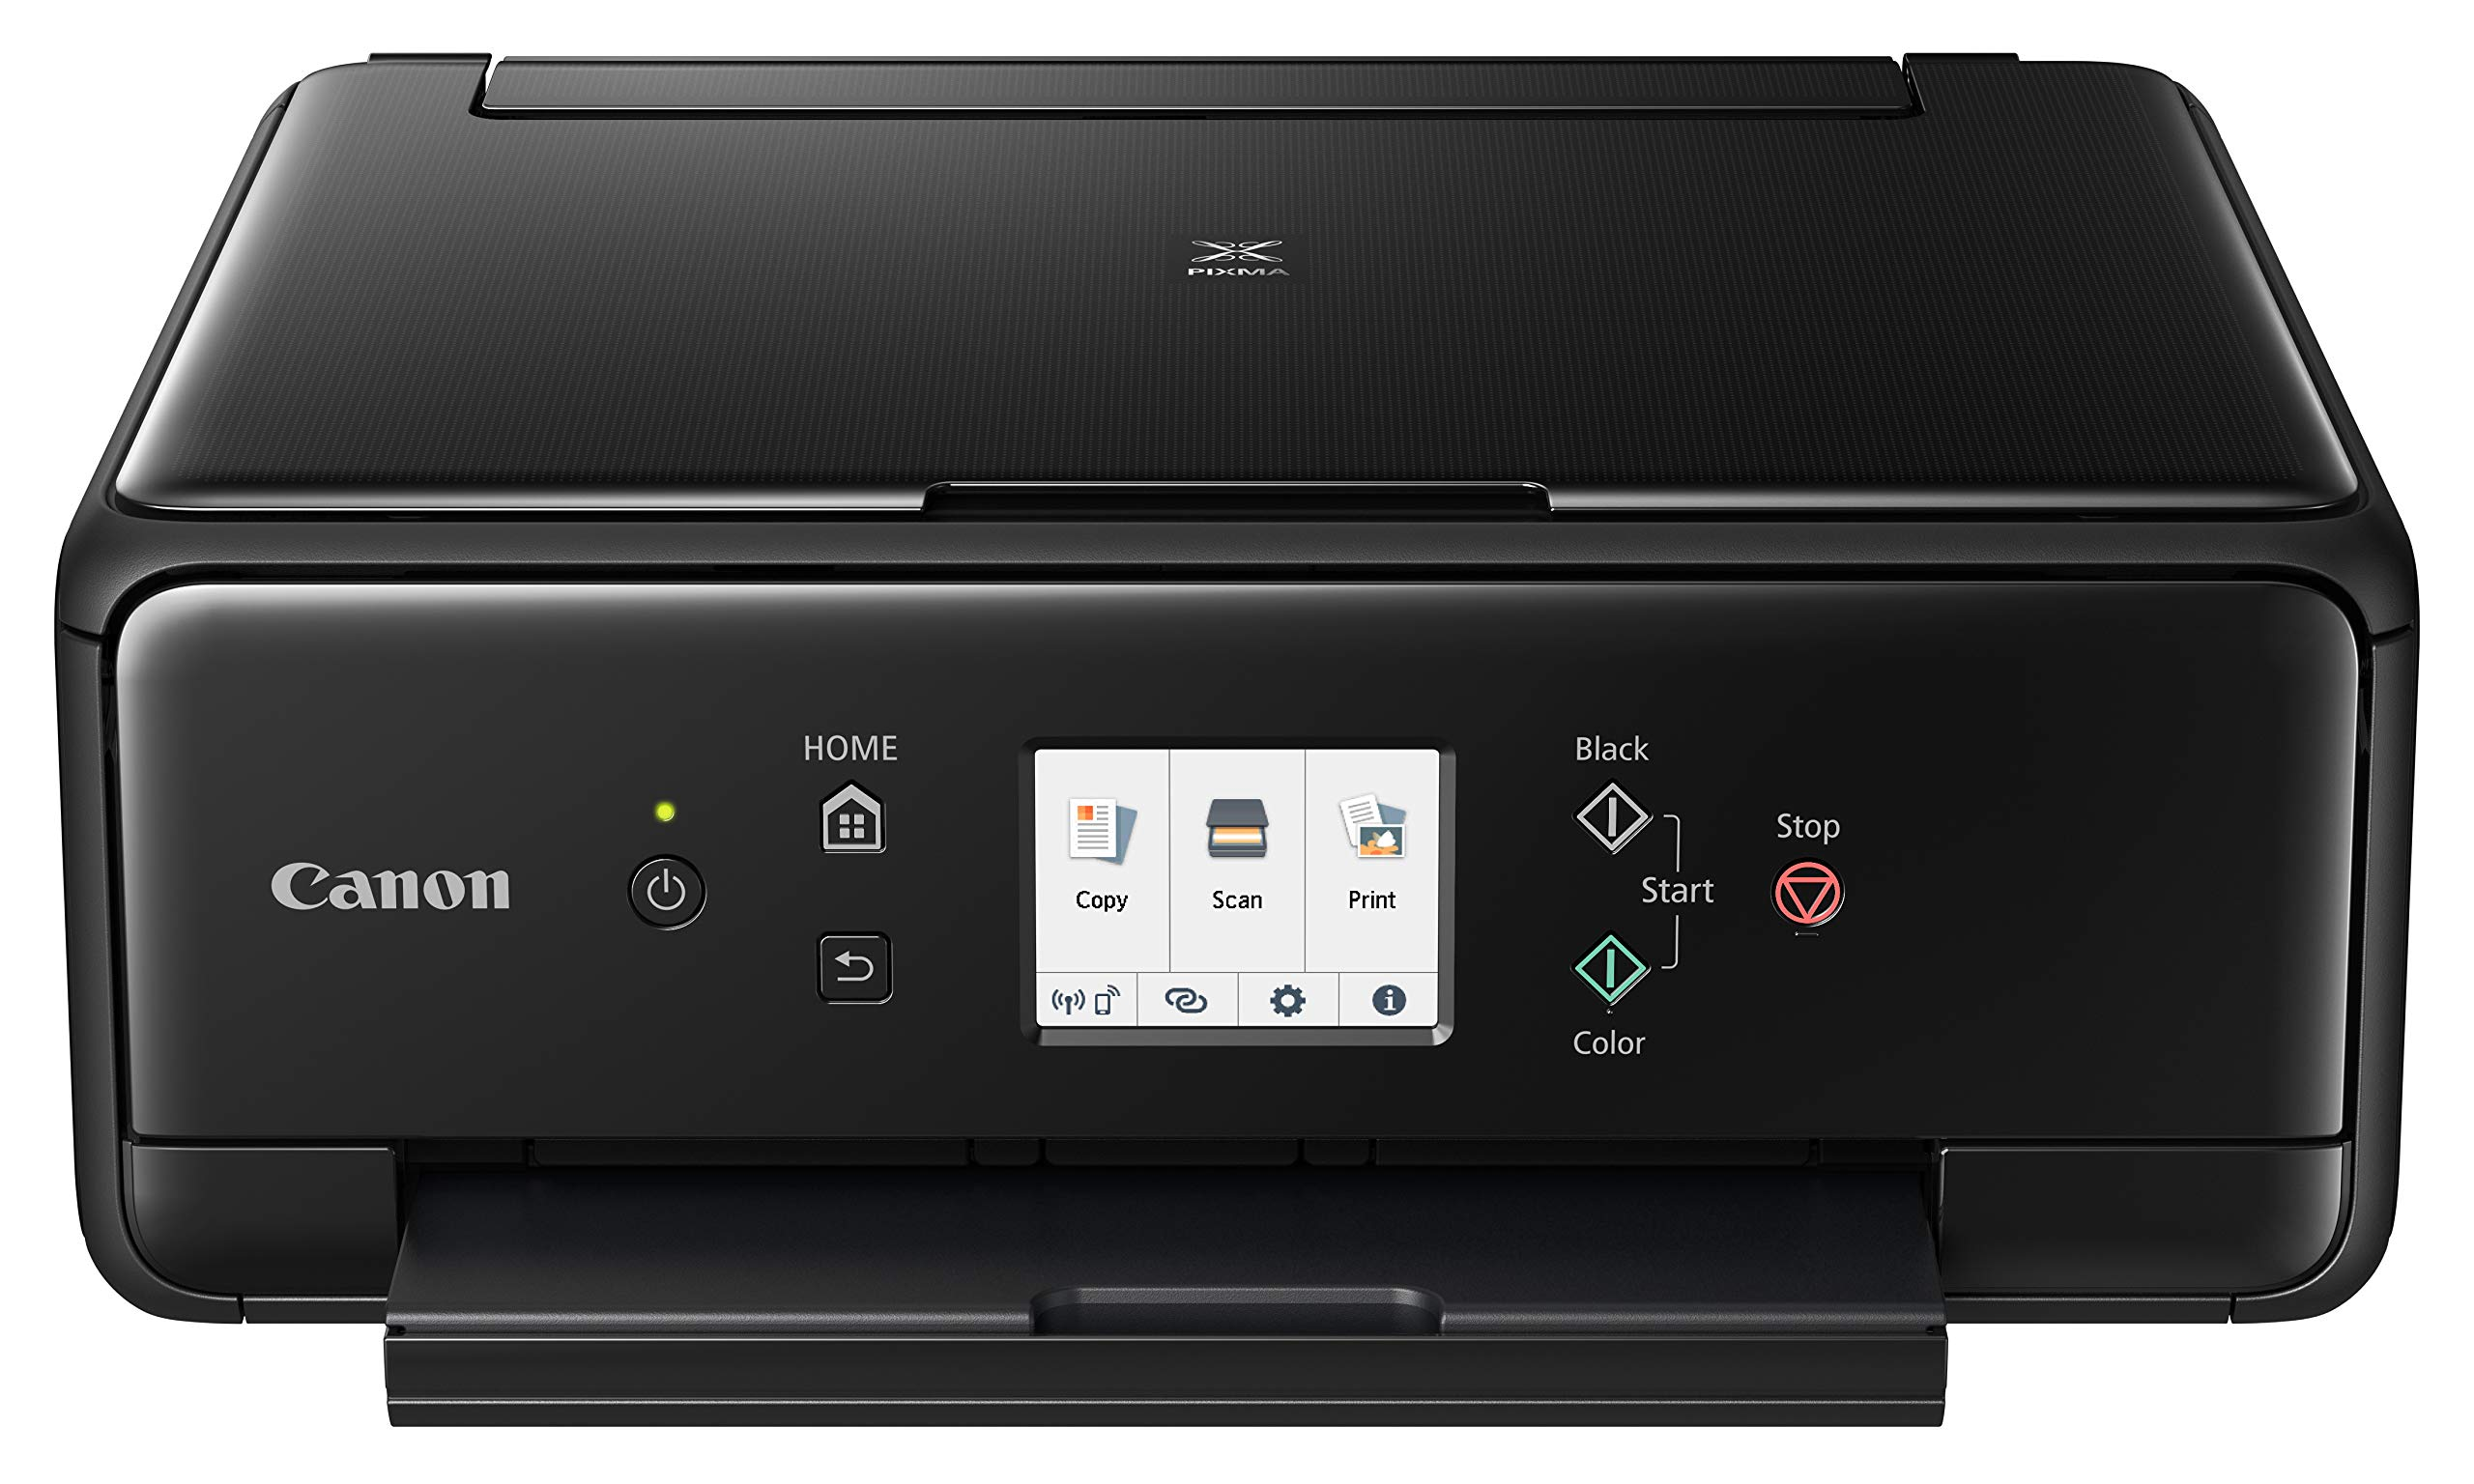 Canon 2986C002 PIXMA TS6220 Wireless All in One Photo Printer with Copier, Scanner and Mobile Printing, Black by Canon (Image #2)